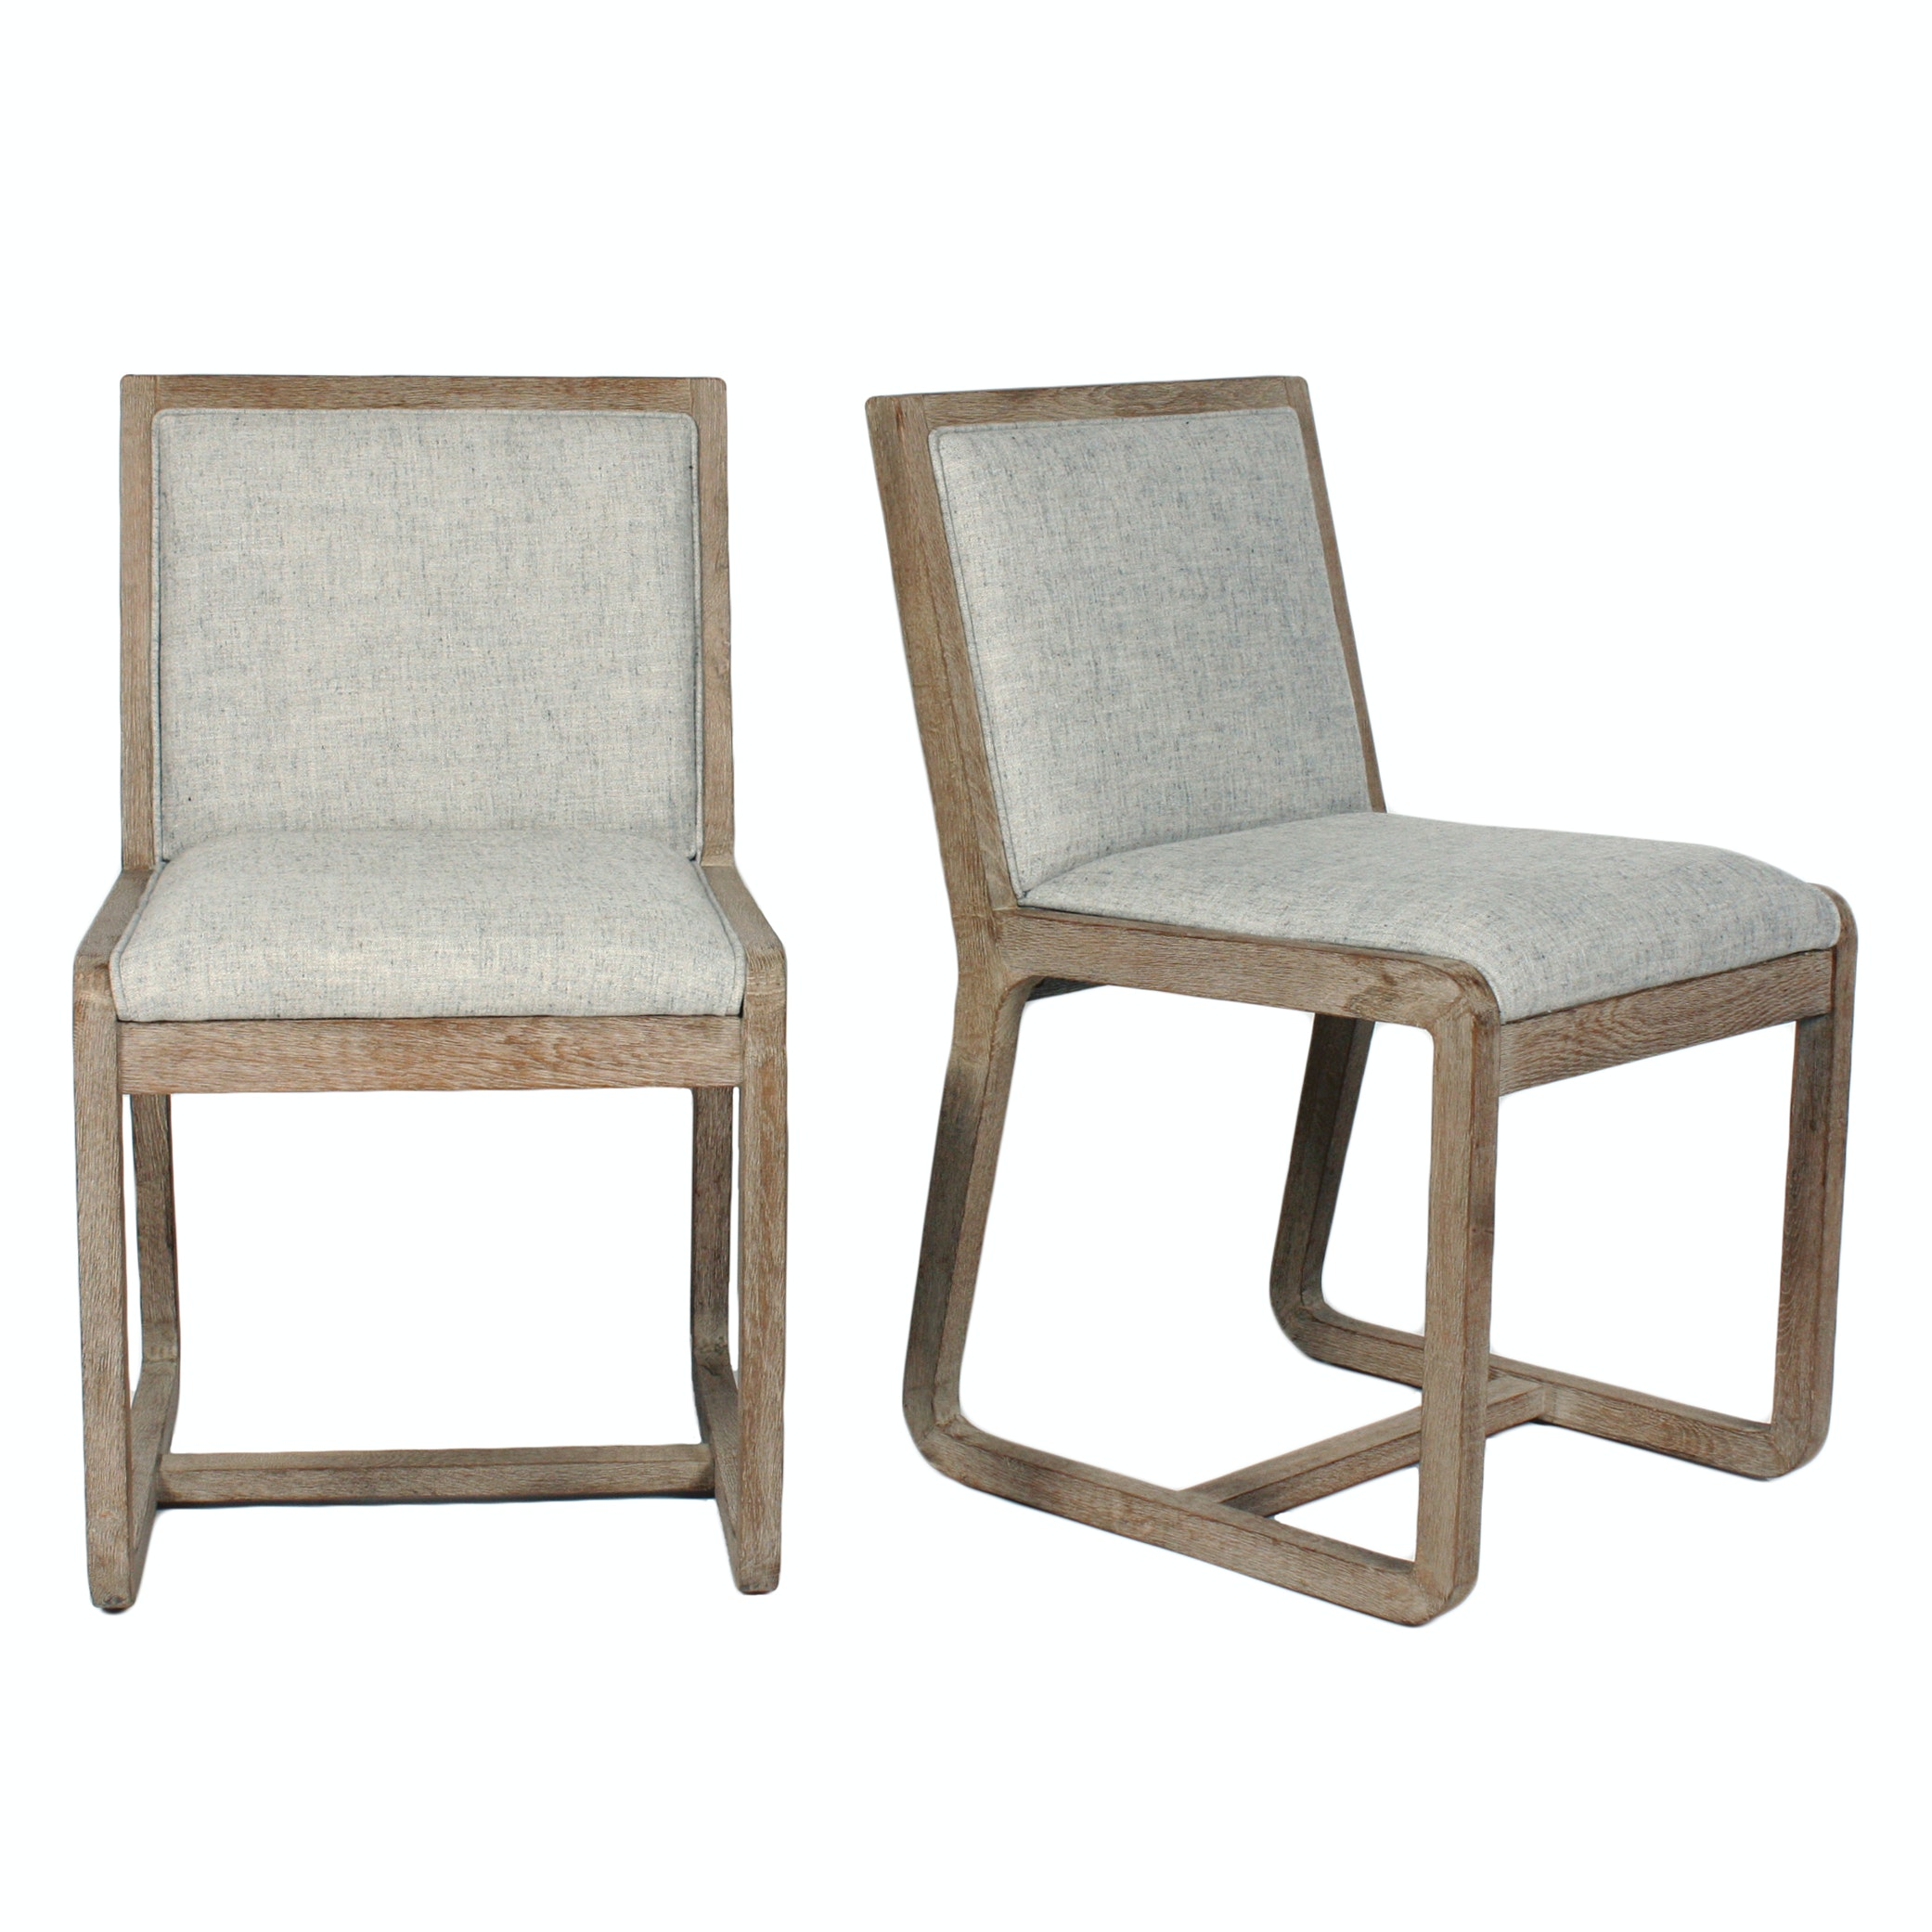 "Pair of ""Coronado"" Side Chairs by Blink Home"